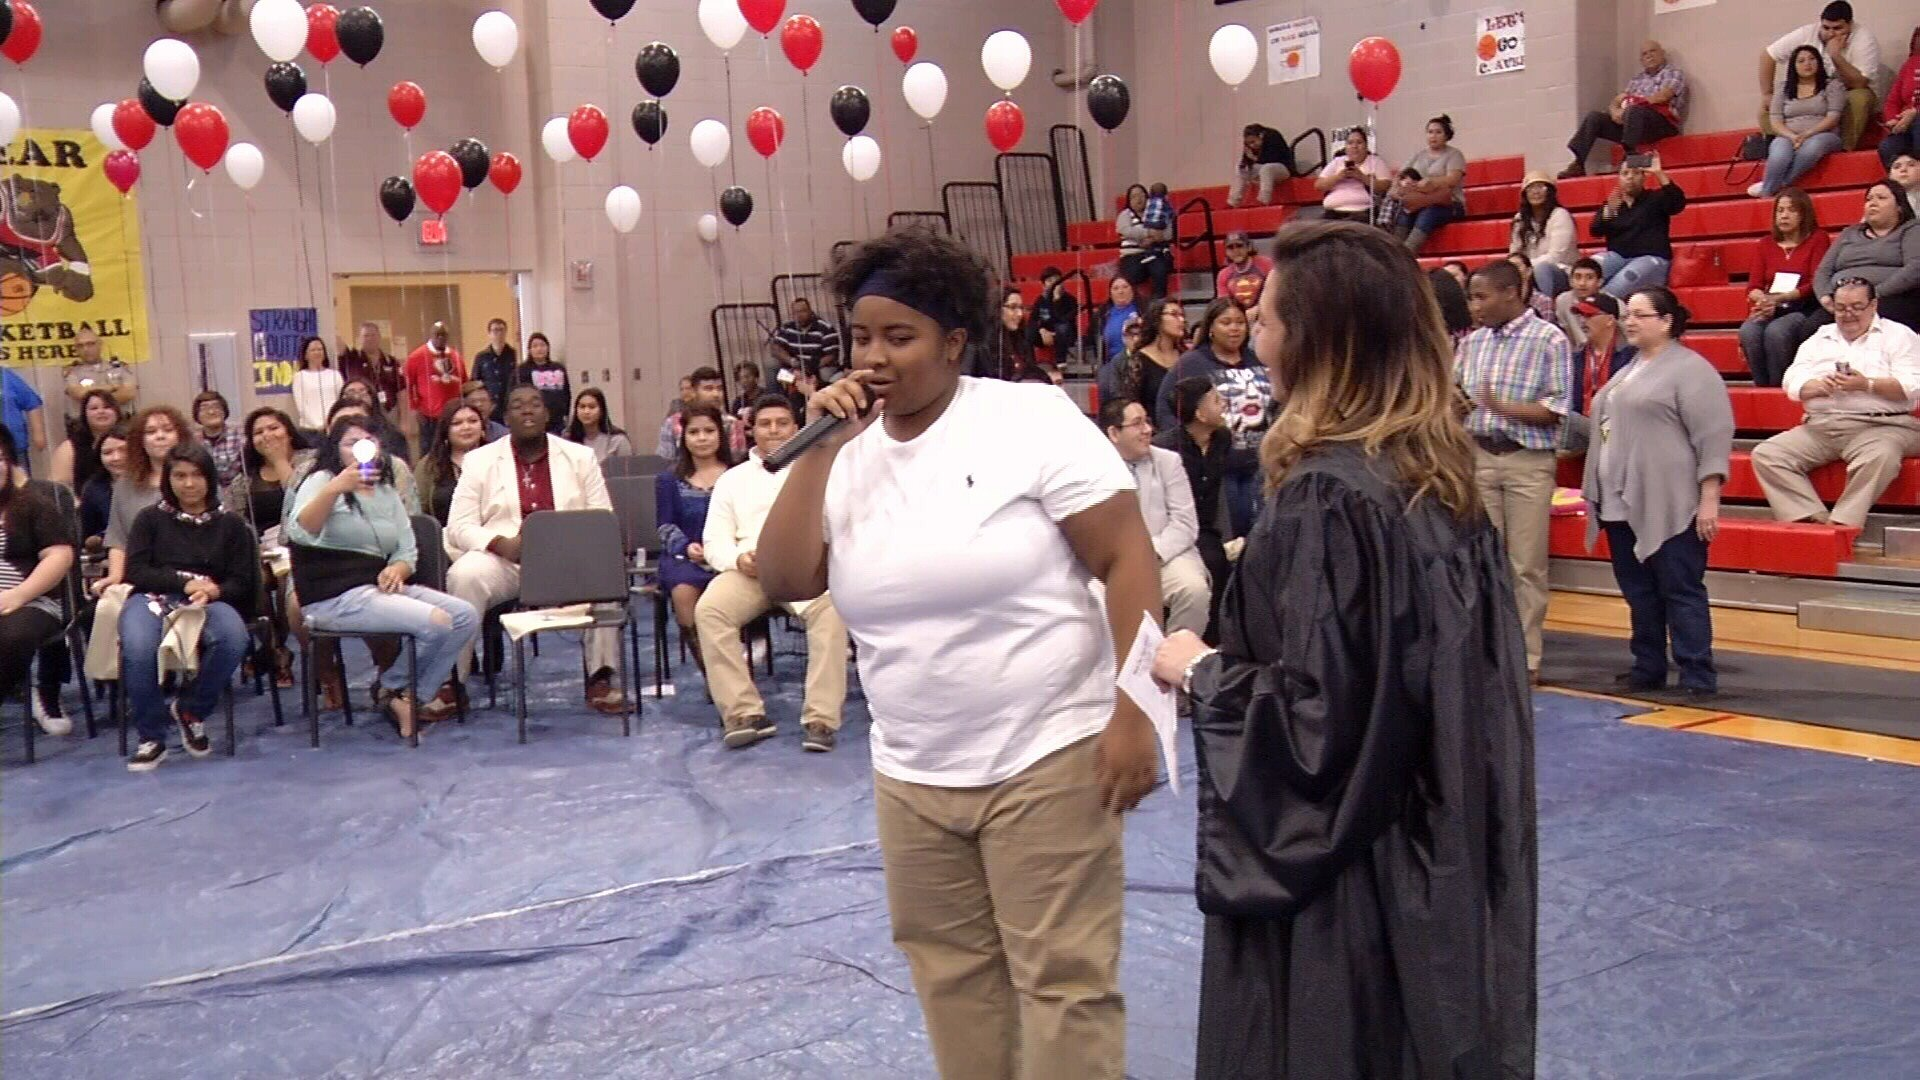 all graduating west oso high school seniors commit to college a big celebration was underway friday over at west oso high school after all of their graduating seniors committed to going to college after graduation